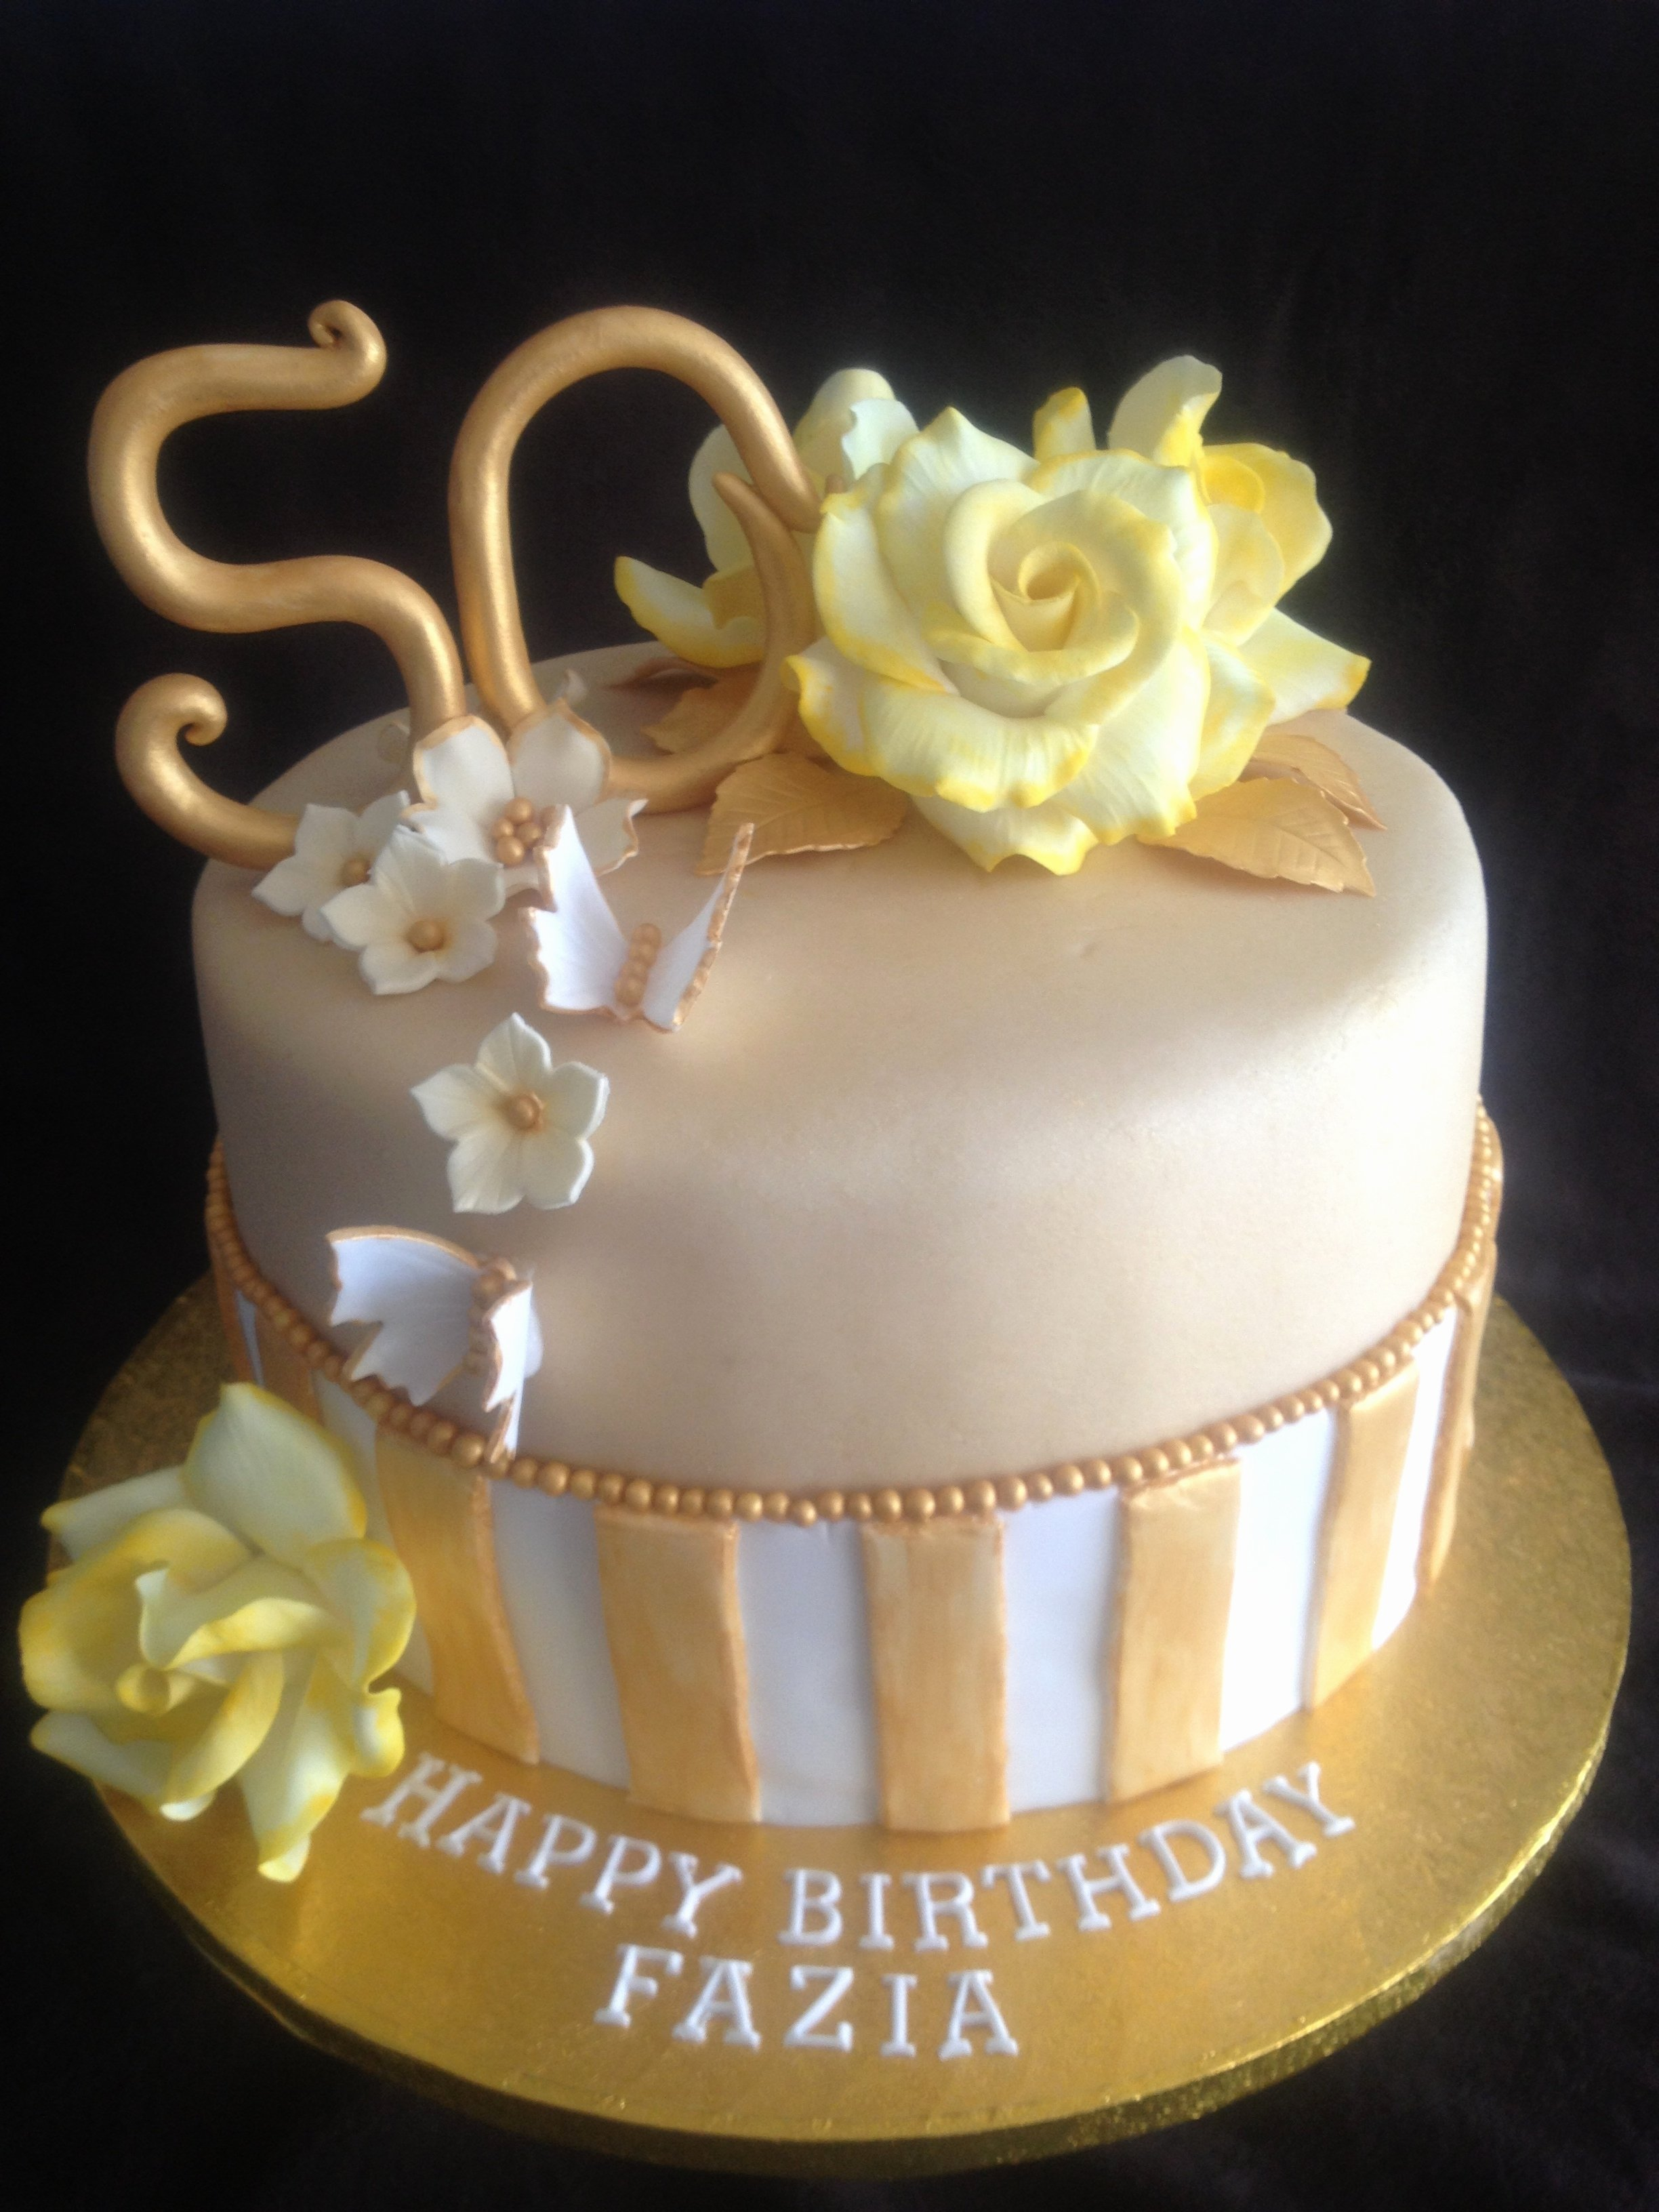 10 Awesome 50Th Birthday Cake Decorating Ideas 50th wedding cake decorations awesome 50th birthday cake ideas for 2020